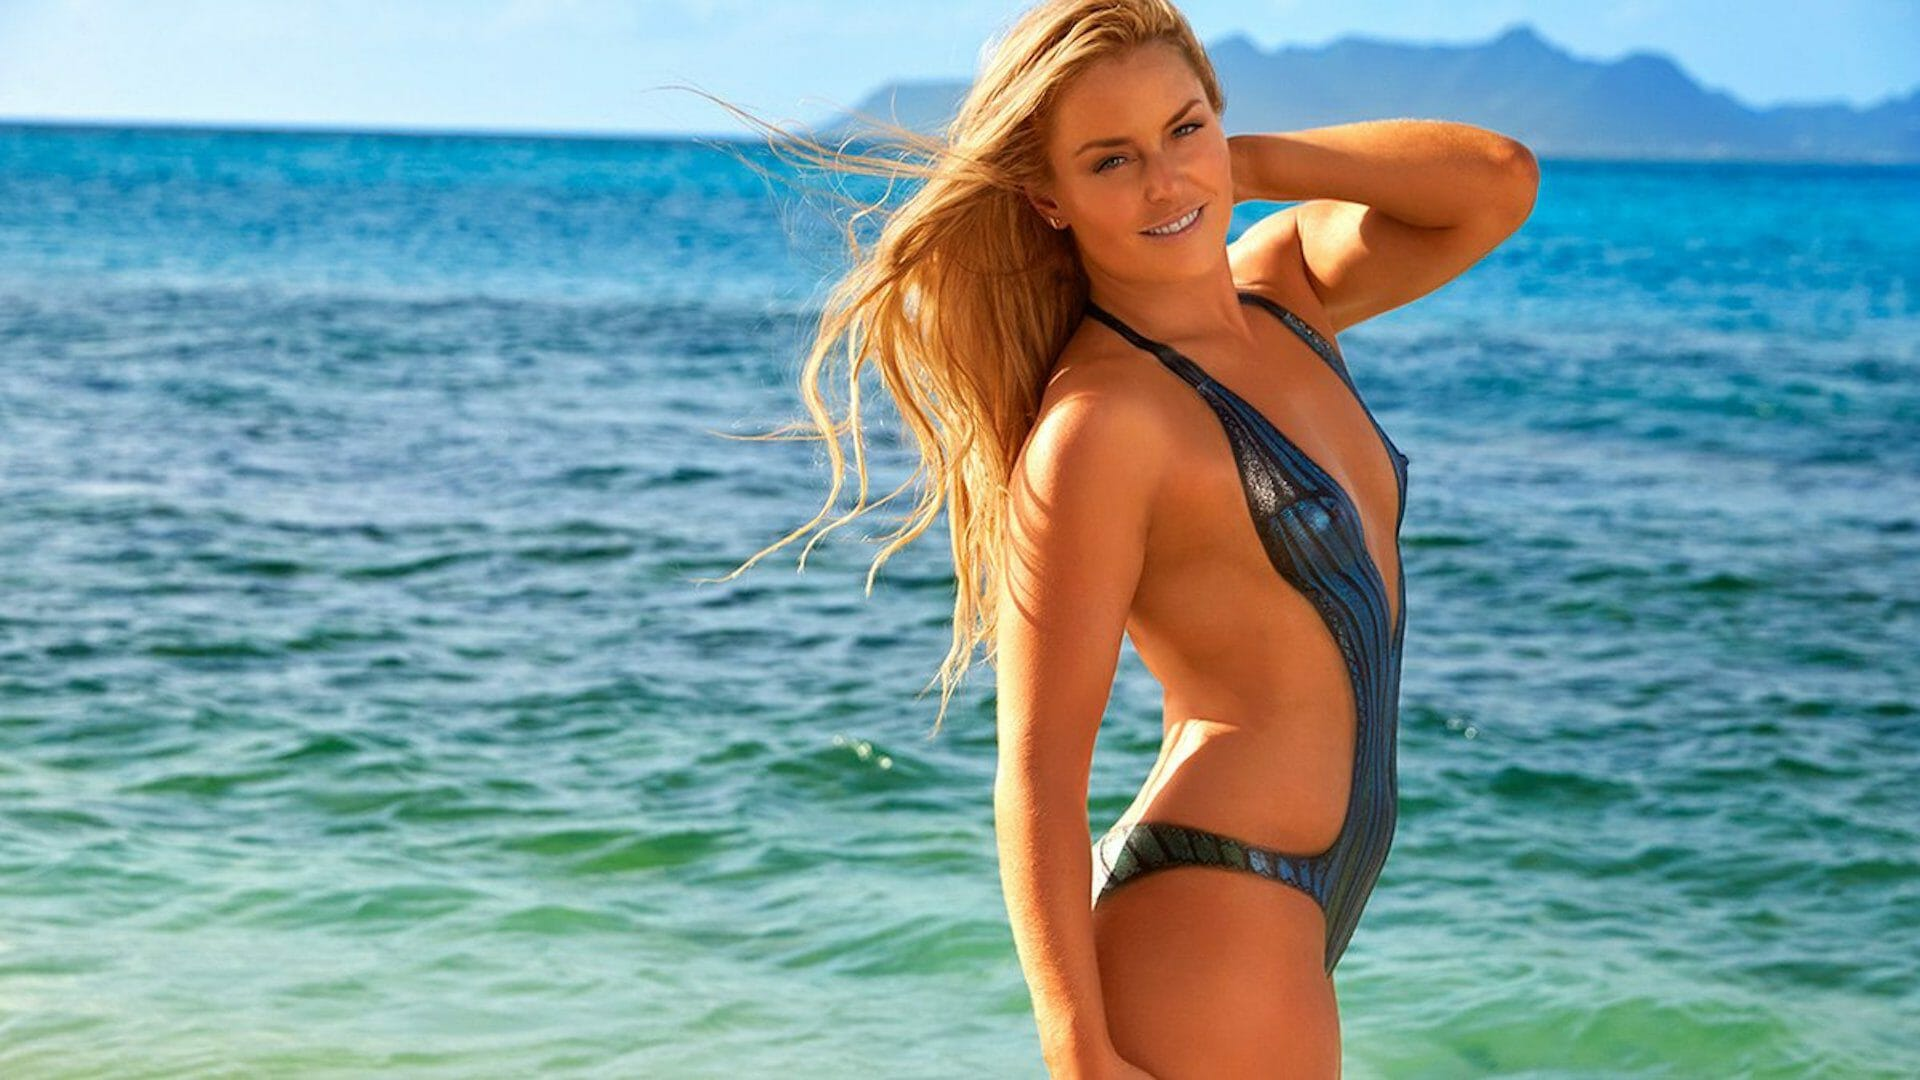 Beside Sport - Ces sportives qui ont posé dans l'édition « Swimsuit » de Sports Illustrated -